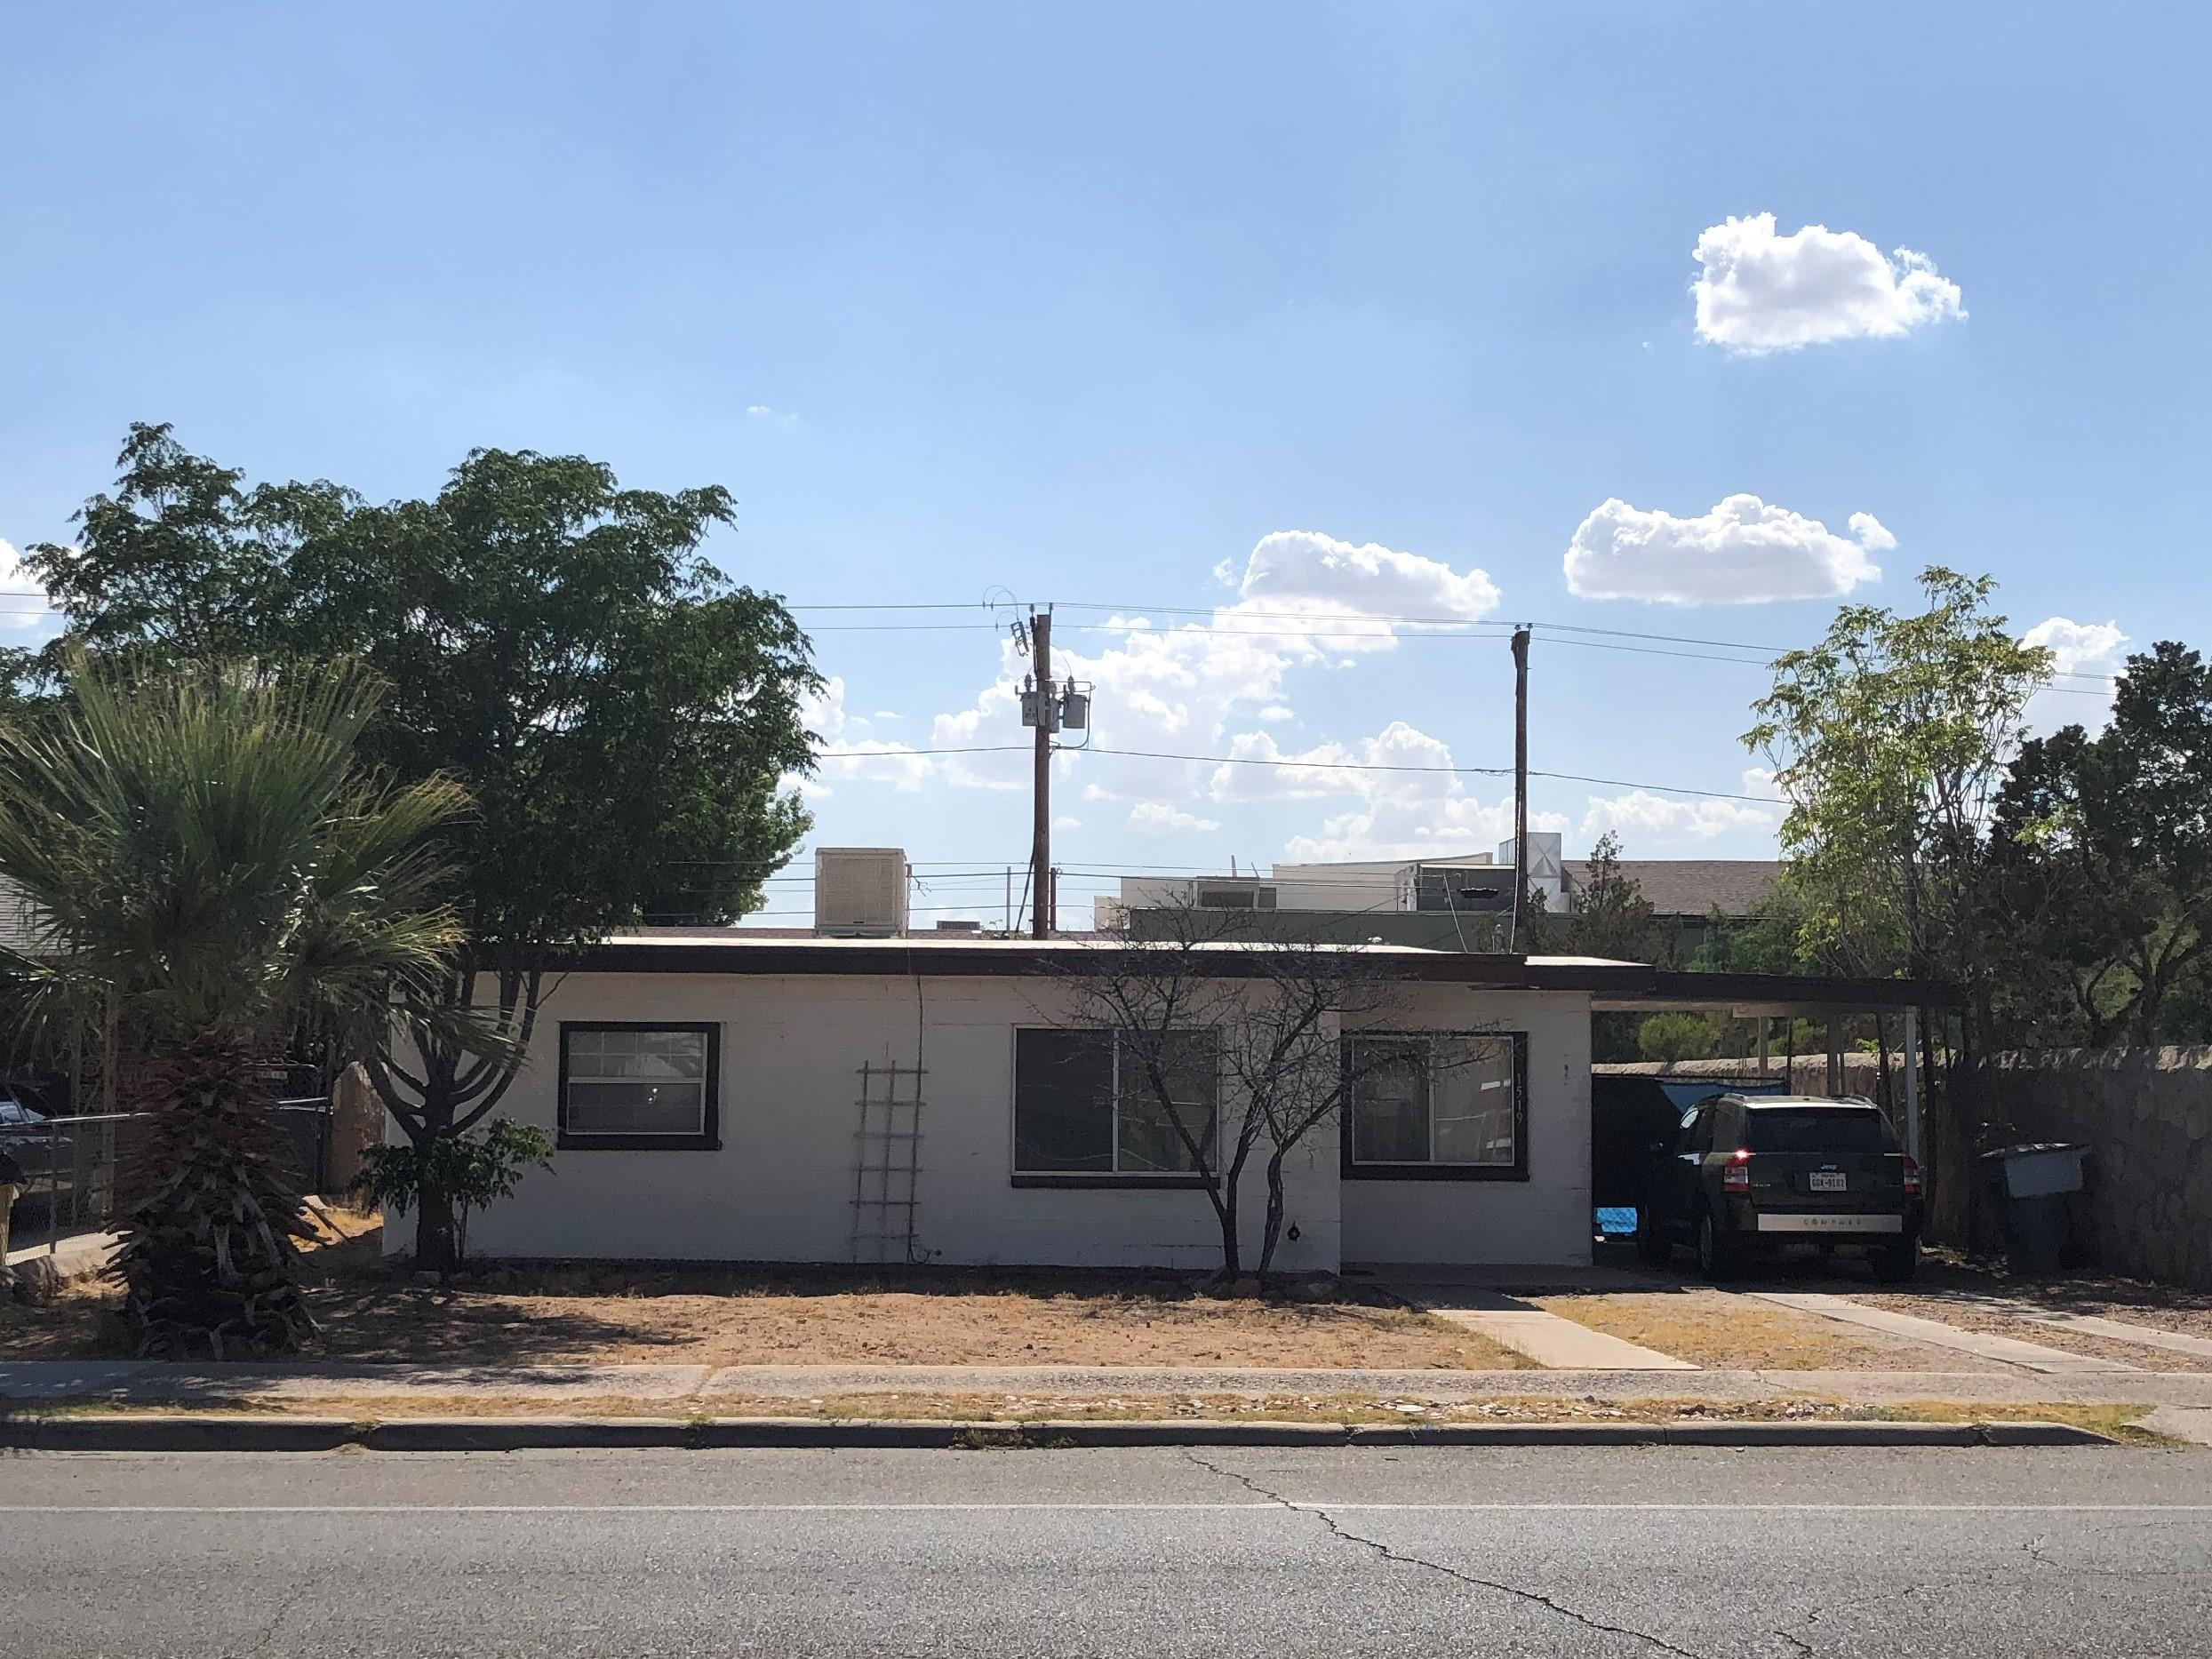 1519 SIOUX, El Paso, Texas 79925, 2 Bedrooms Bedrooms, ,1 BathroomBathrooms,Residential,For sale,SIOUX,830270